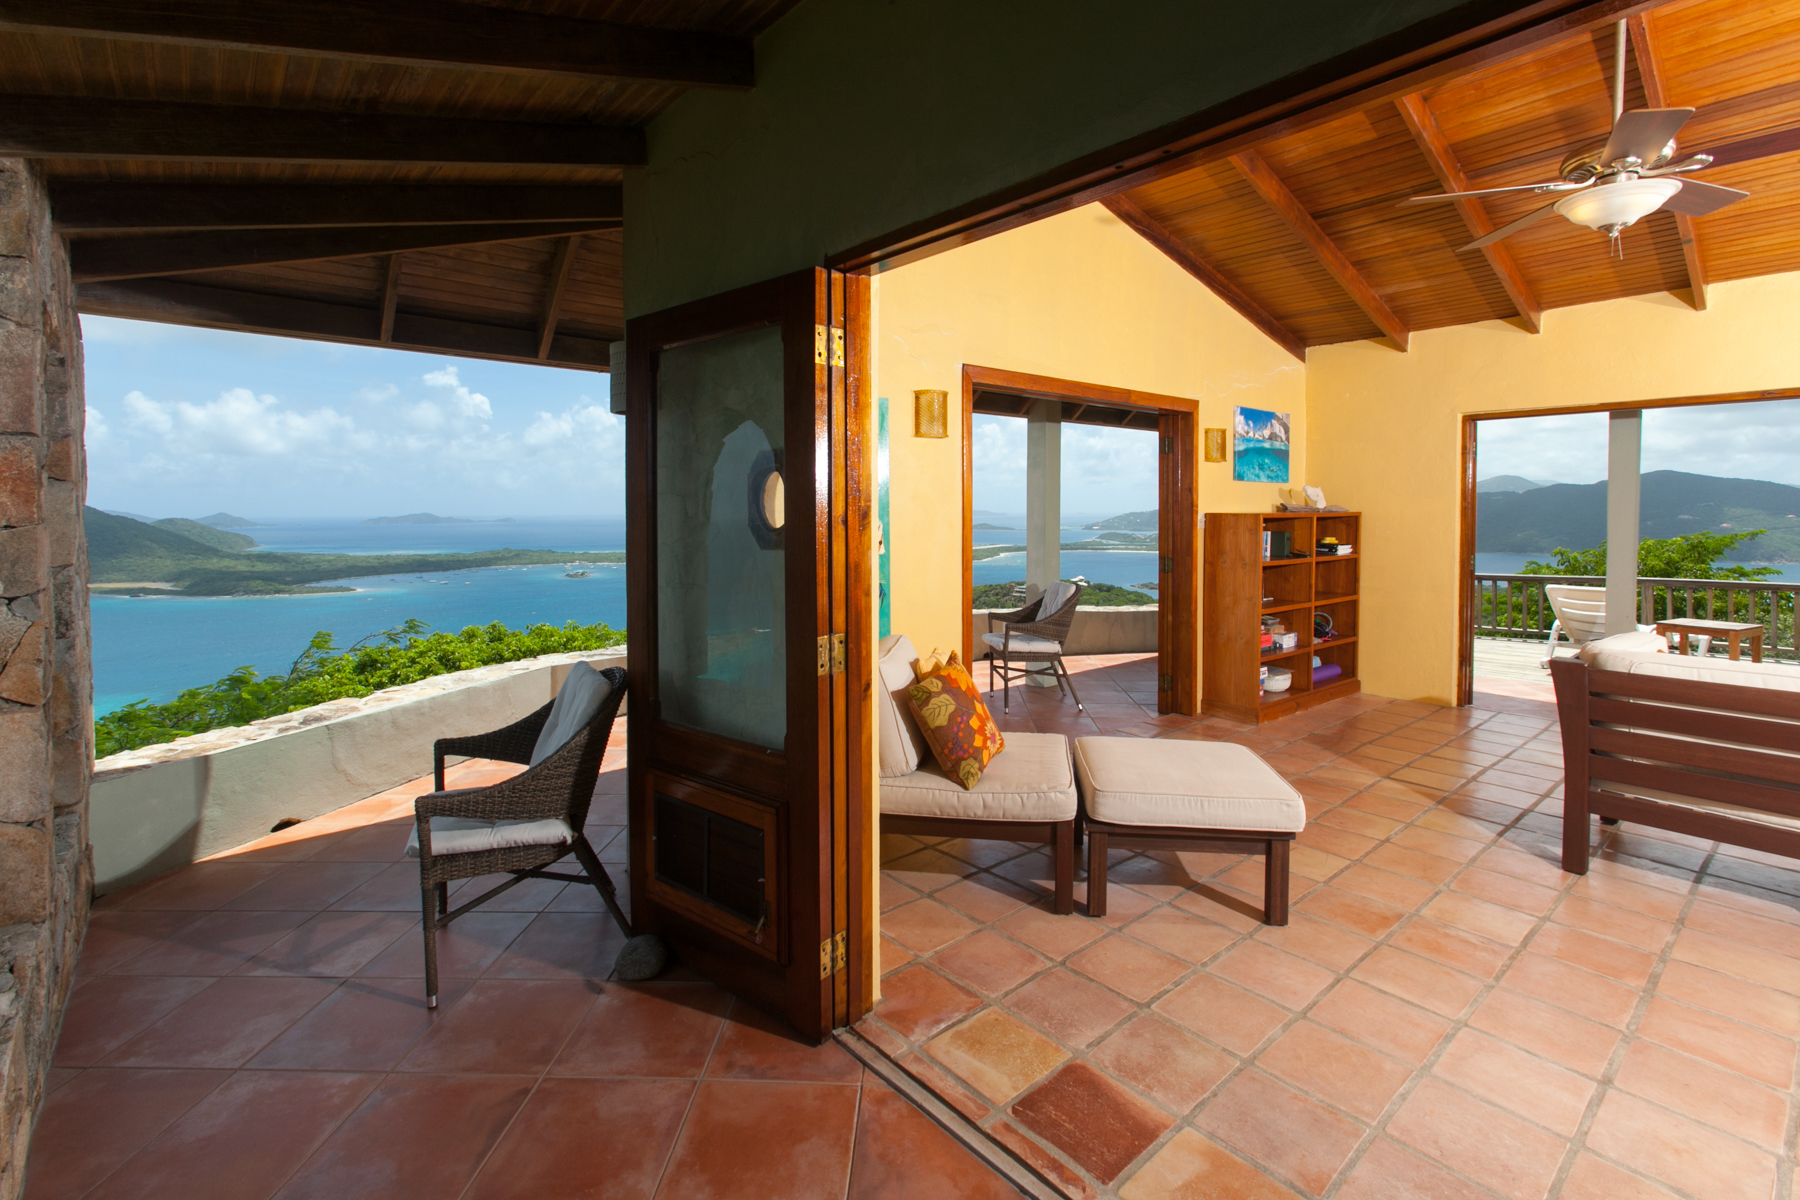 Single Family Home for Sale at Stargazer Privateers Bay, Great Camanoe British Virgin Islands